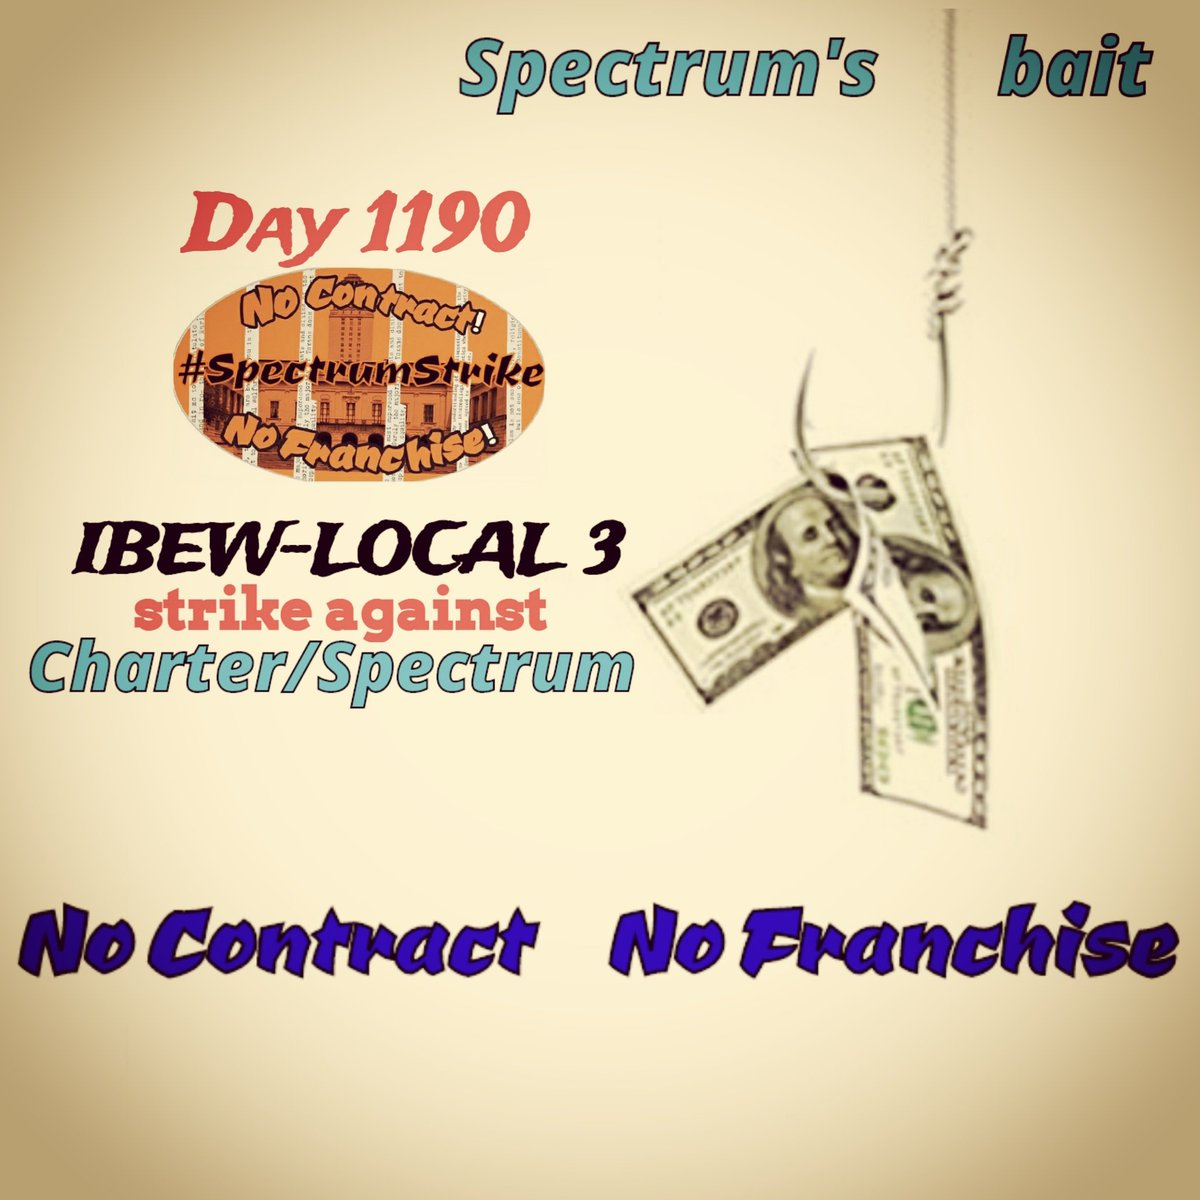 Day1190 Brothas & Sisthas Charter/Spectrum's bait worked on numerous politicians & scabs. To buy a franchise agreement, they'll be set a more alluring bait. Those quiet one; are they caught in it? #SpectrumStrike #Local3 #FairContractNow #corporategreed #NoContractNoFranchise2020<br>http://pic.twitter.com/dGqtsnVbVC